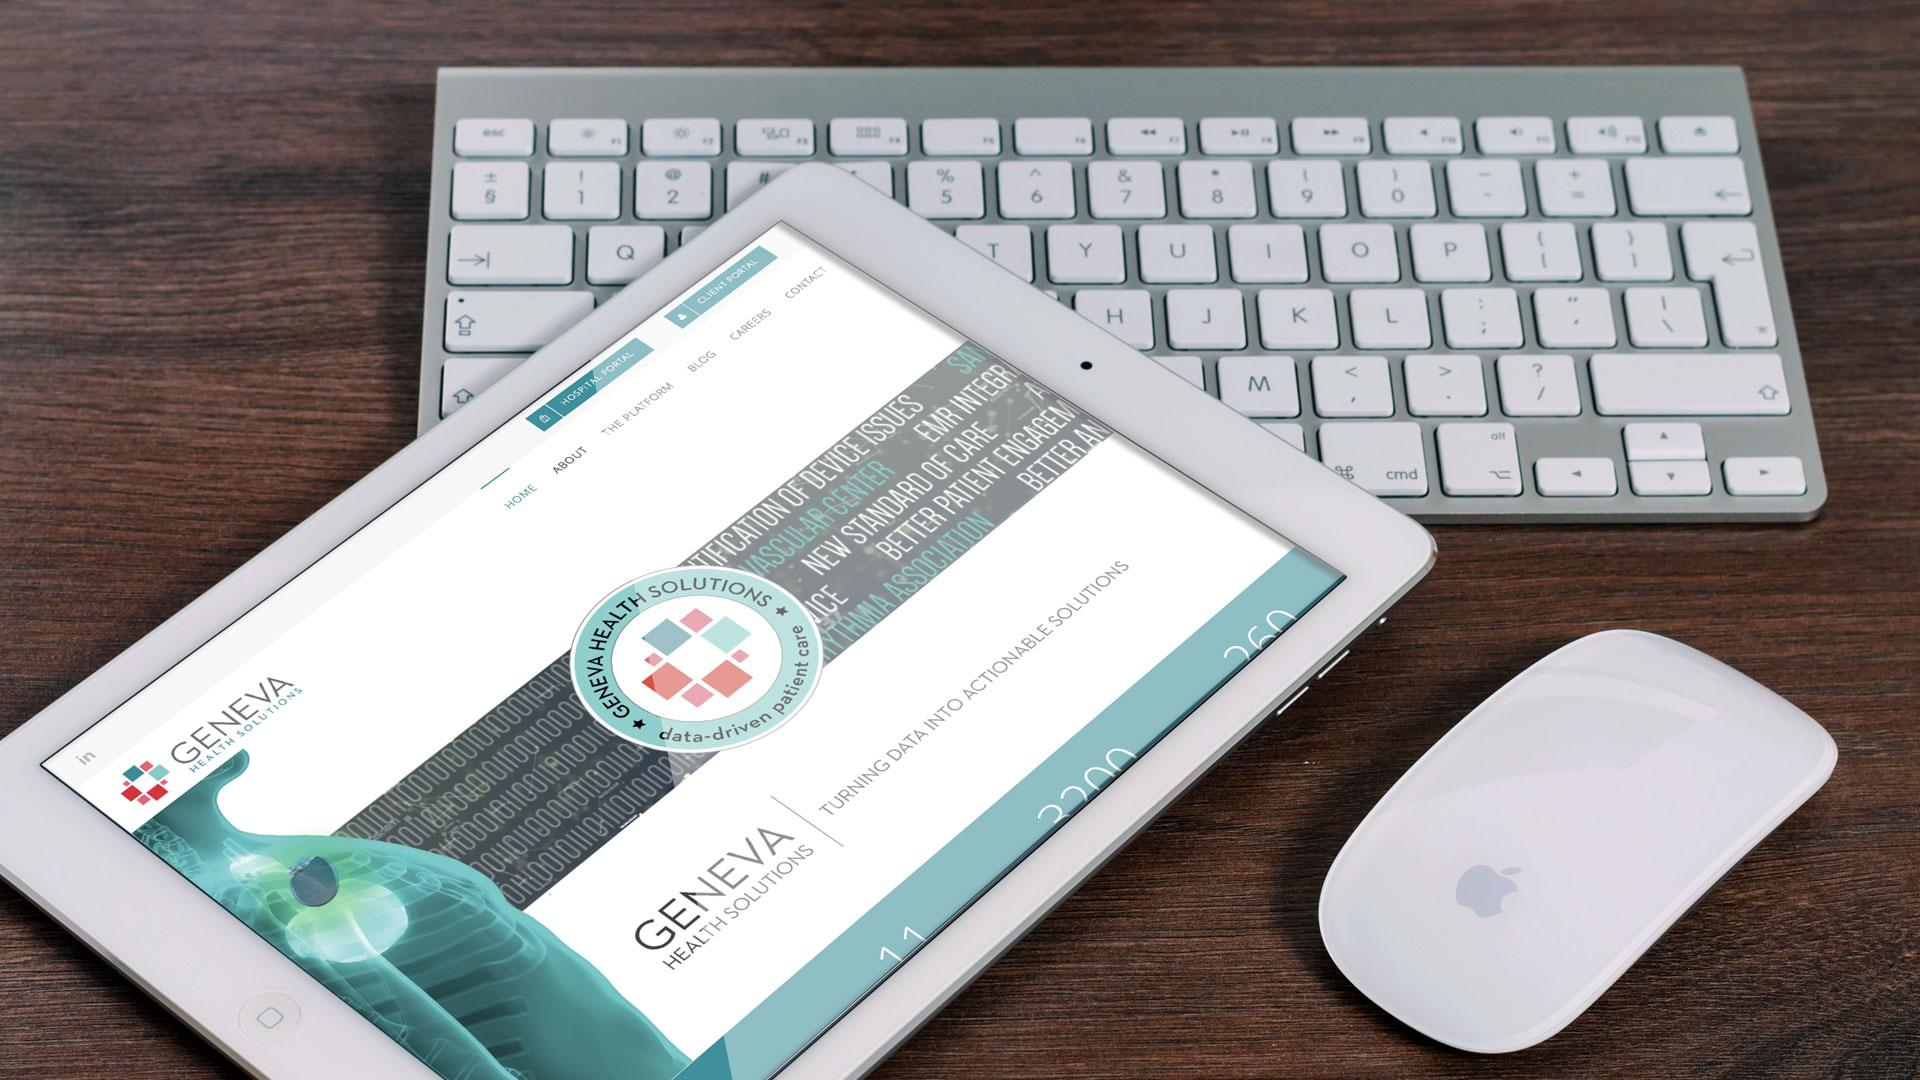 BioTelemetry Acquires Cardiac Remote Monitoring Startup